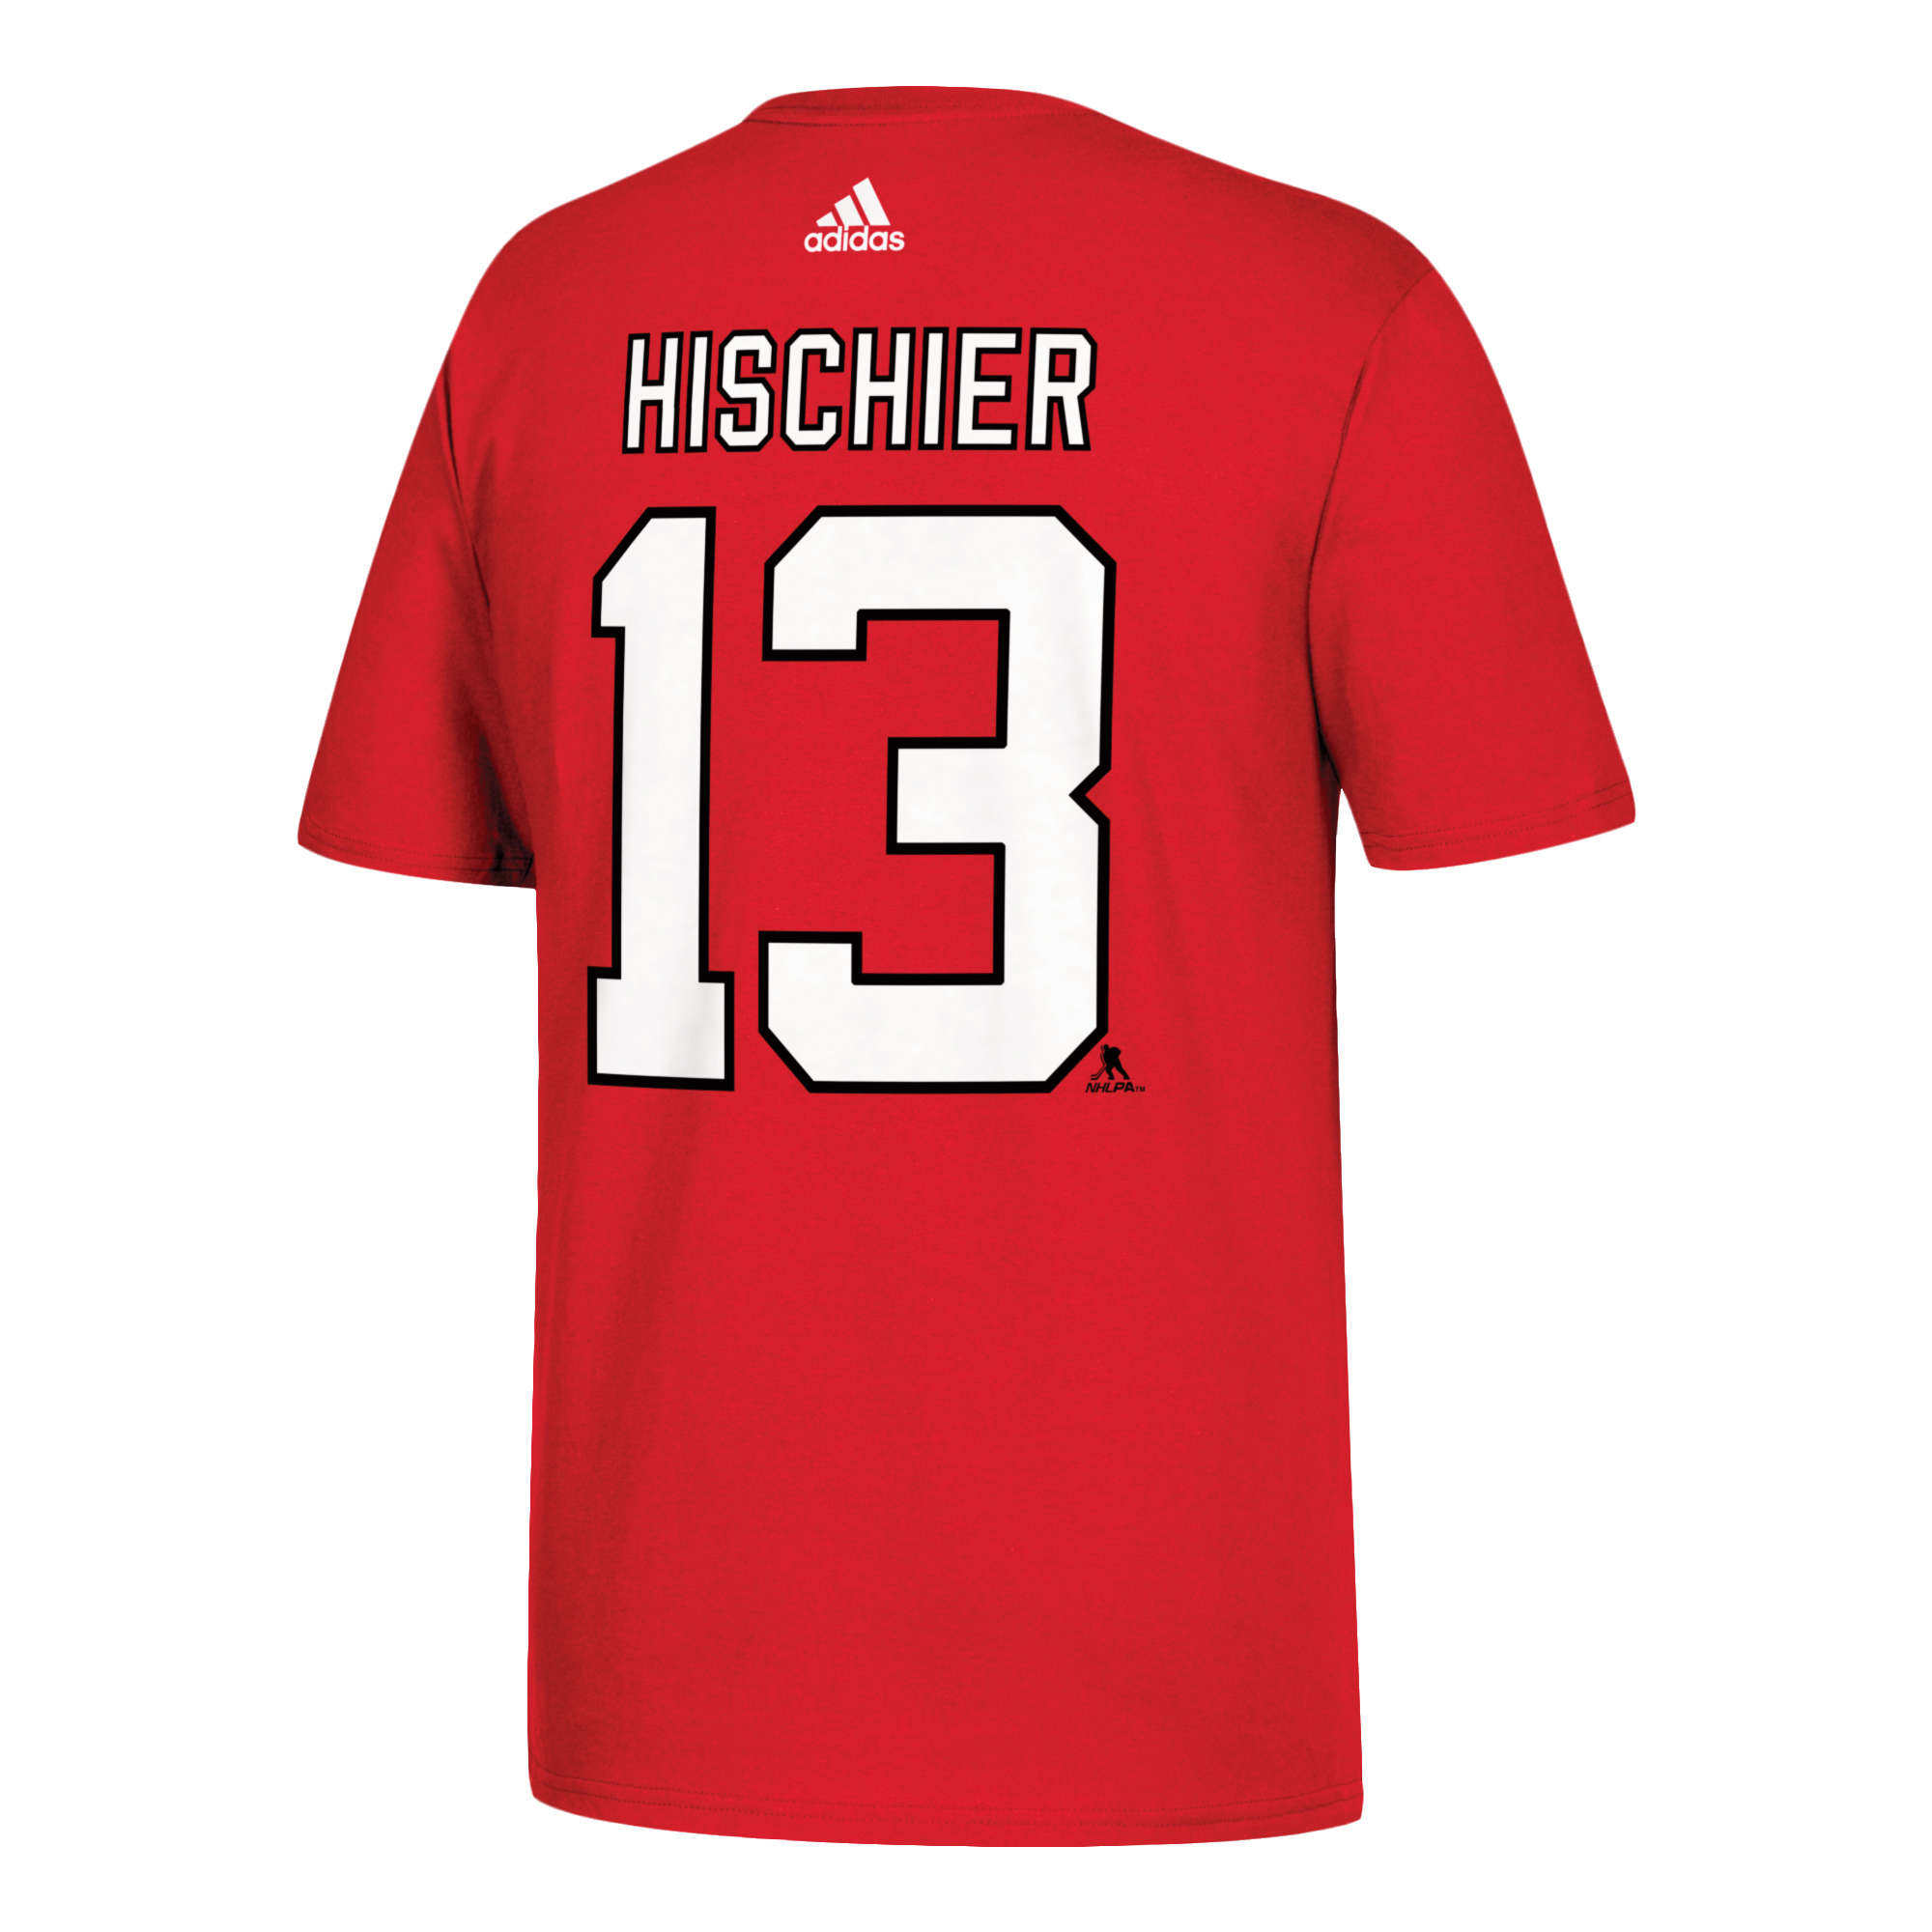 Nico Hischier New Jersey Devils adidas Name   Number T-Shirt - Red -  Walmart.com 925f3957f